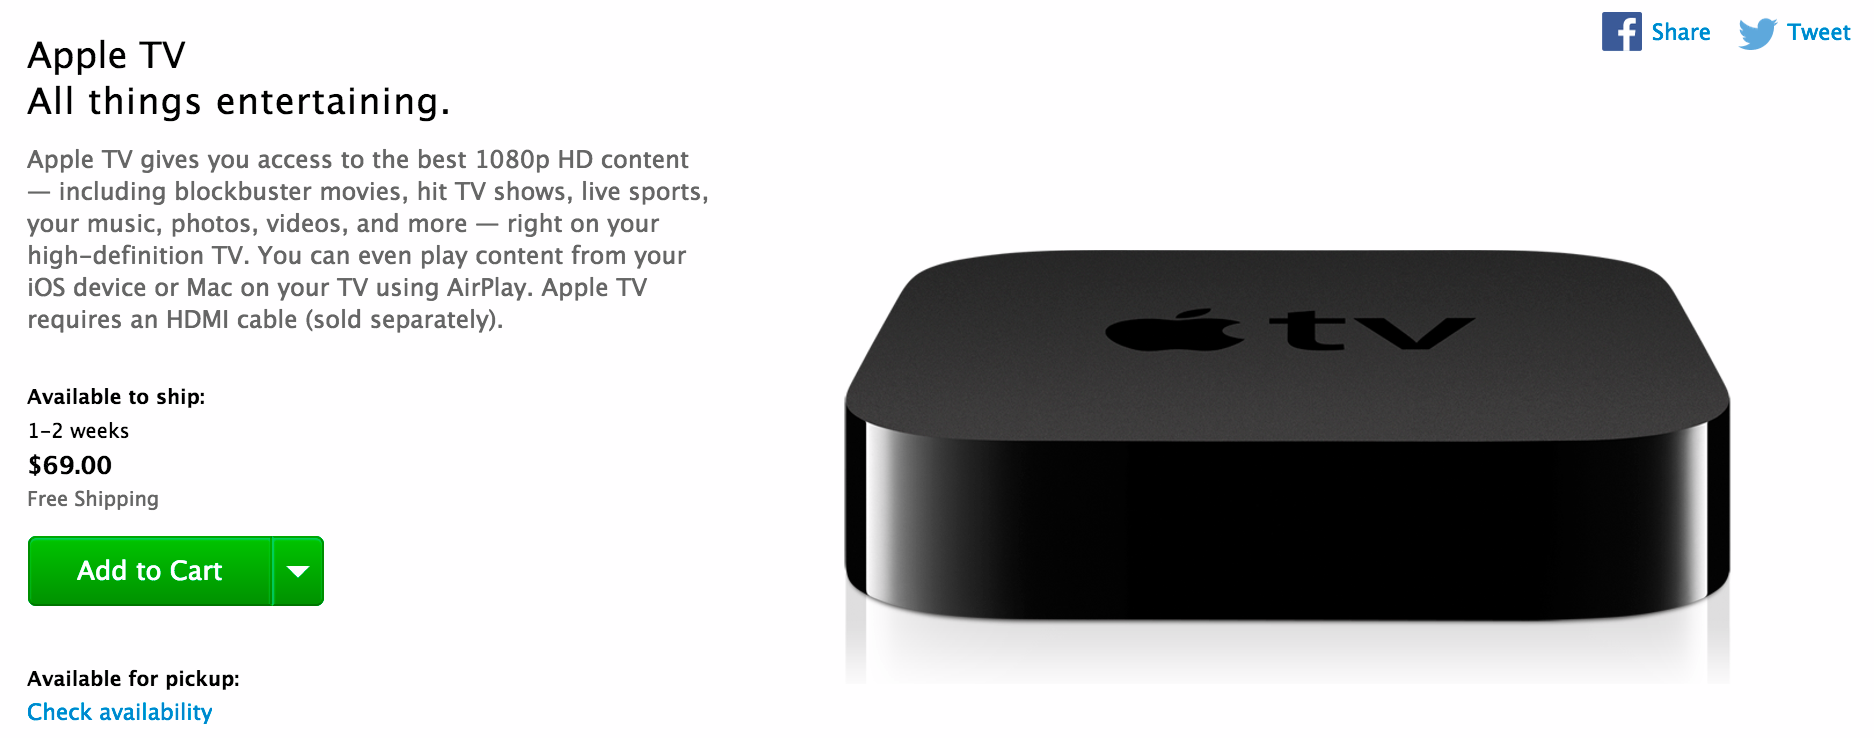 Новому Apple TV быть!